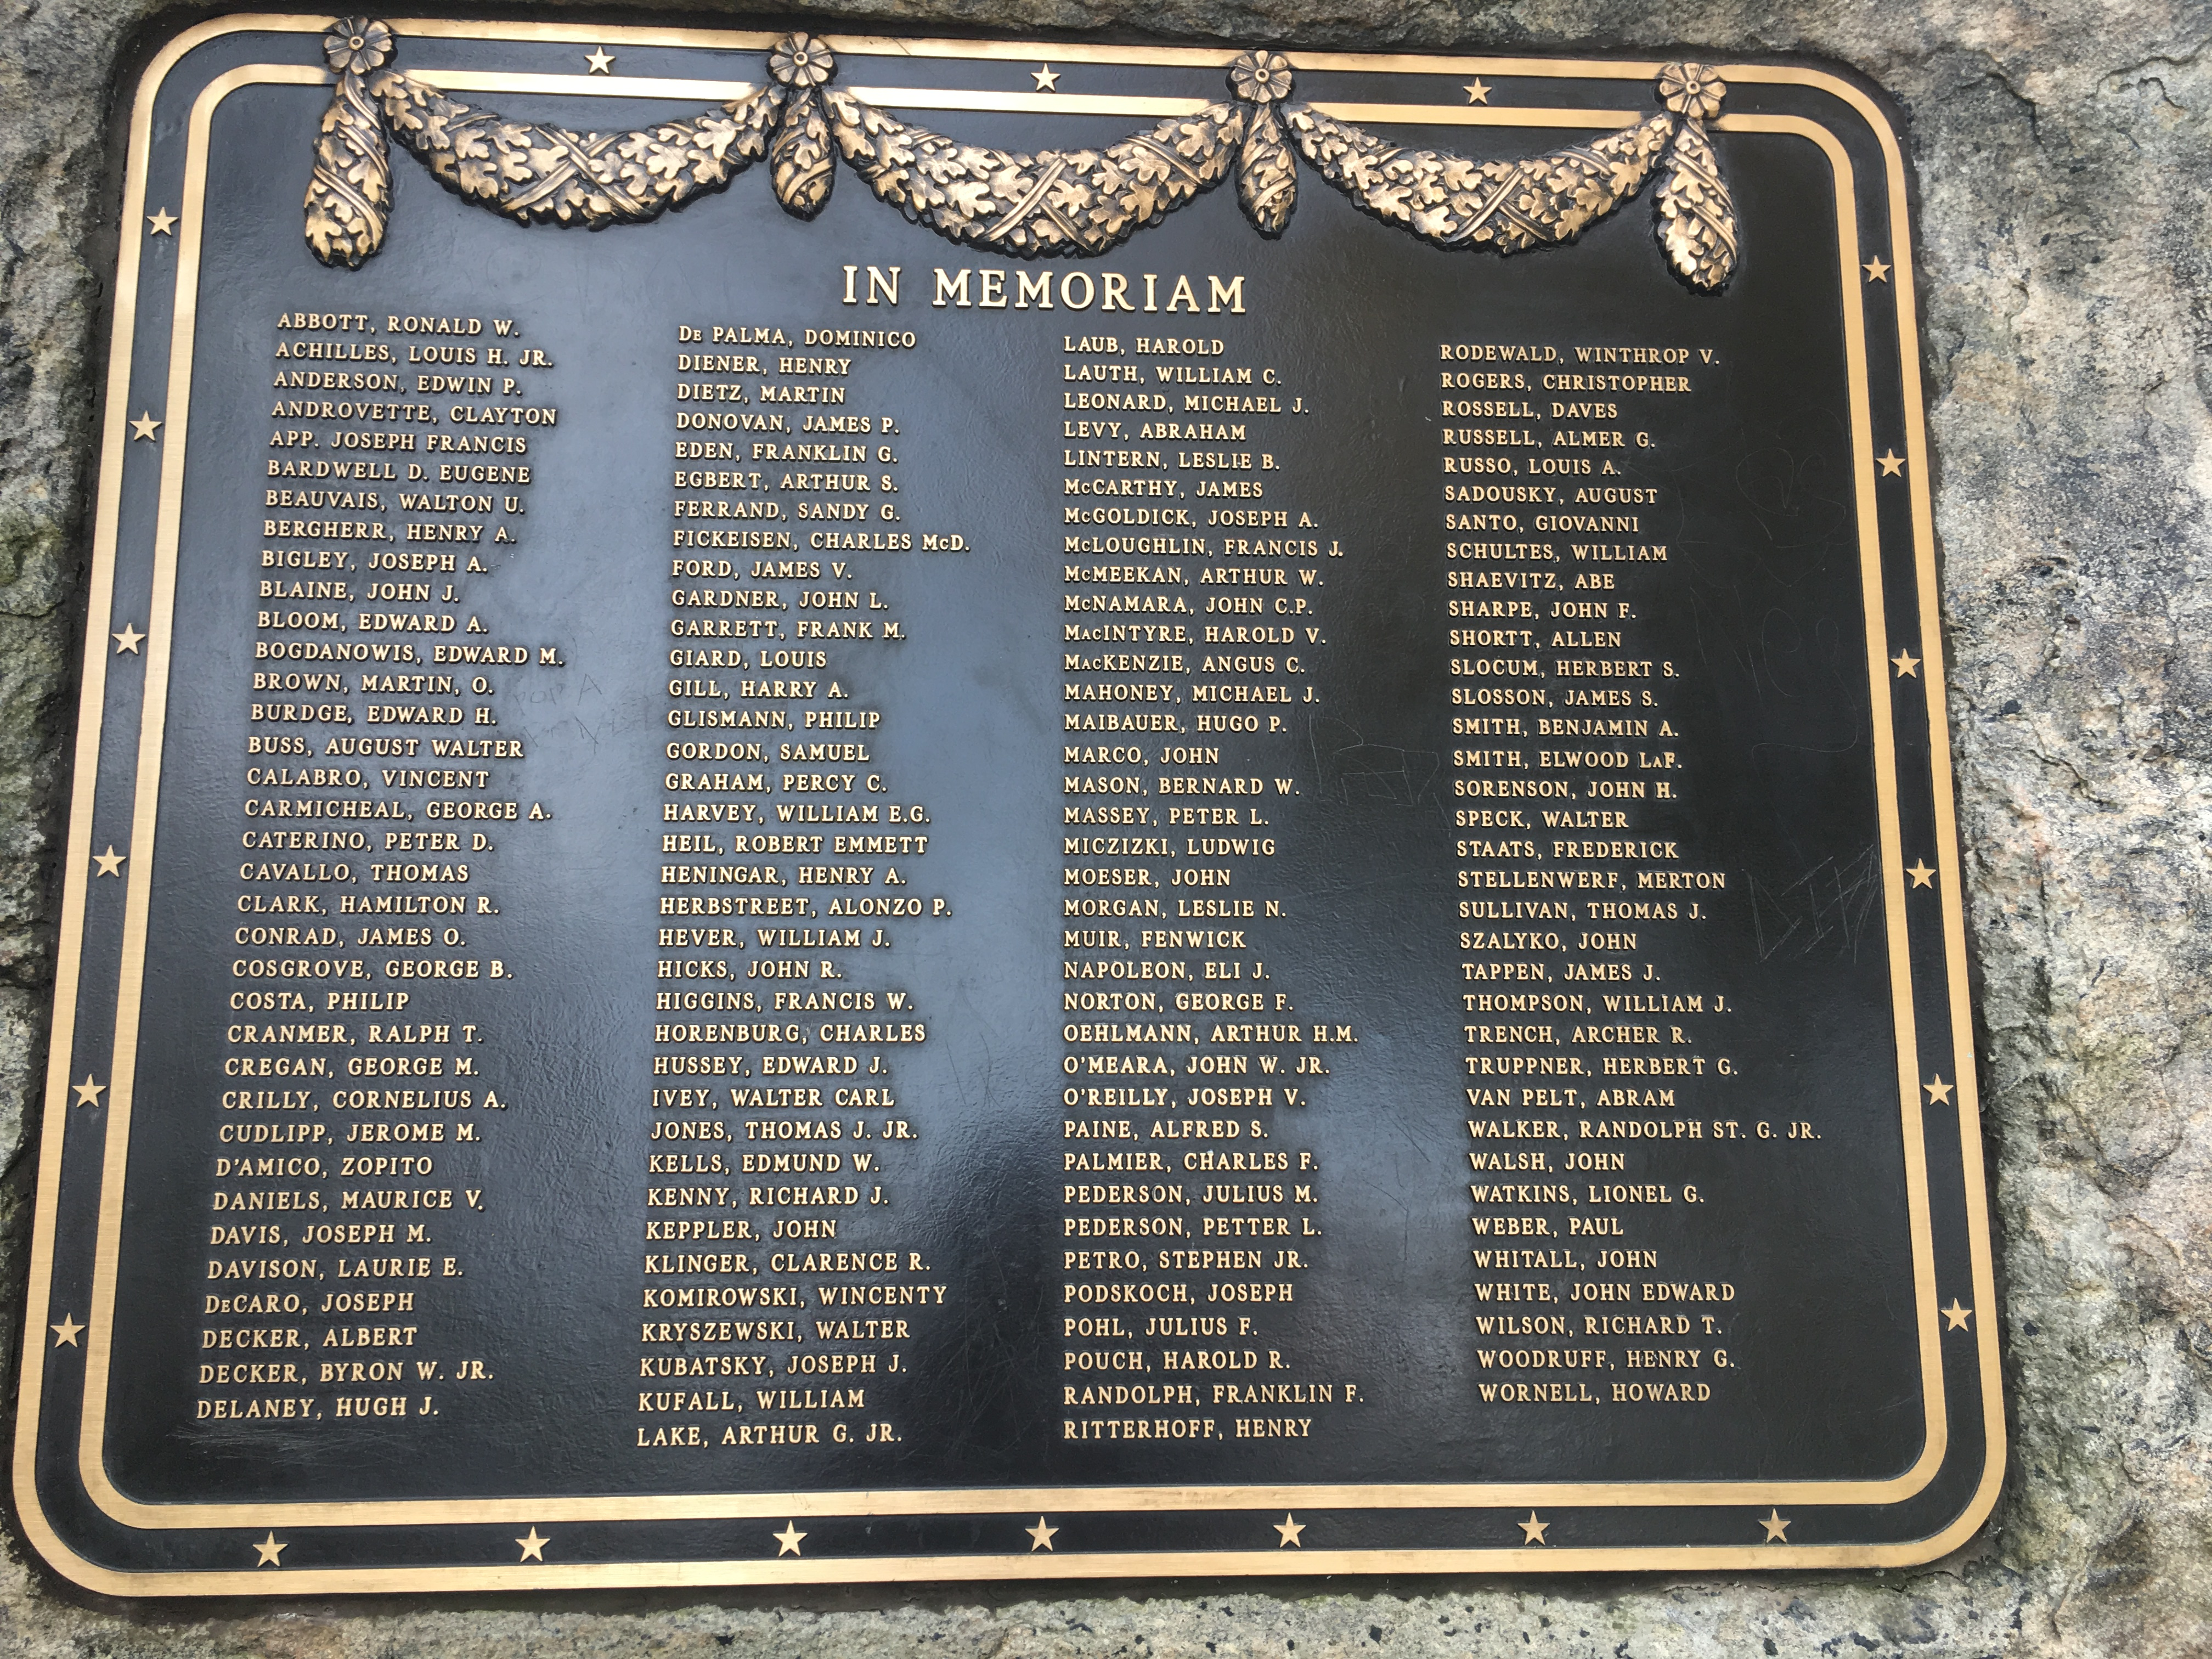 D. The plaque naming each of the Staten Island fallen by name